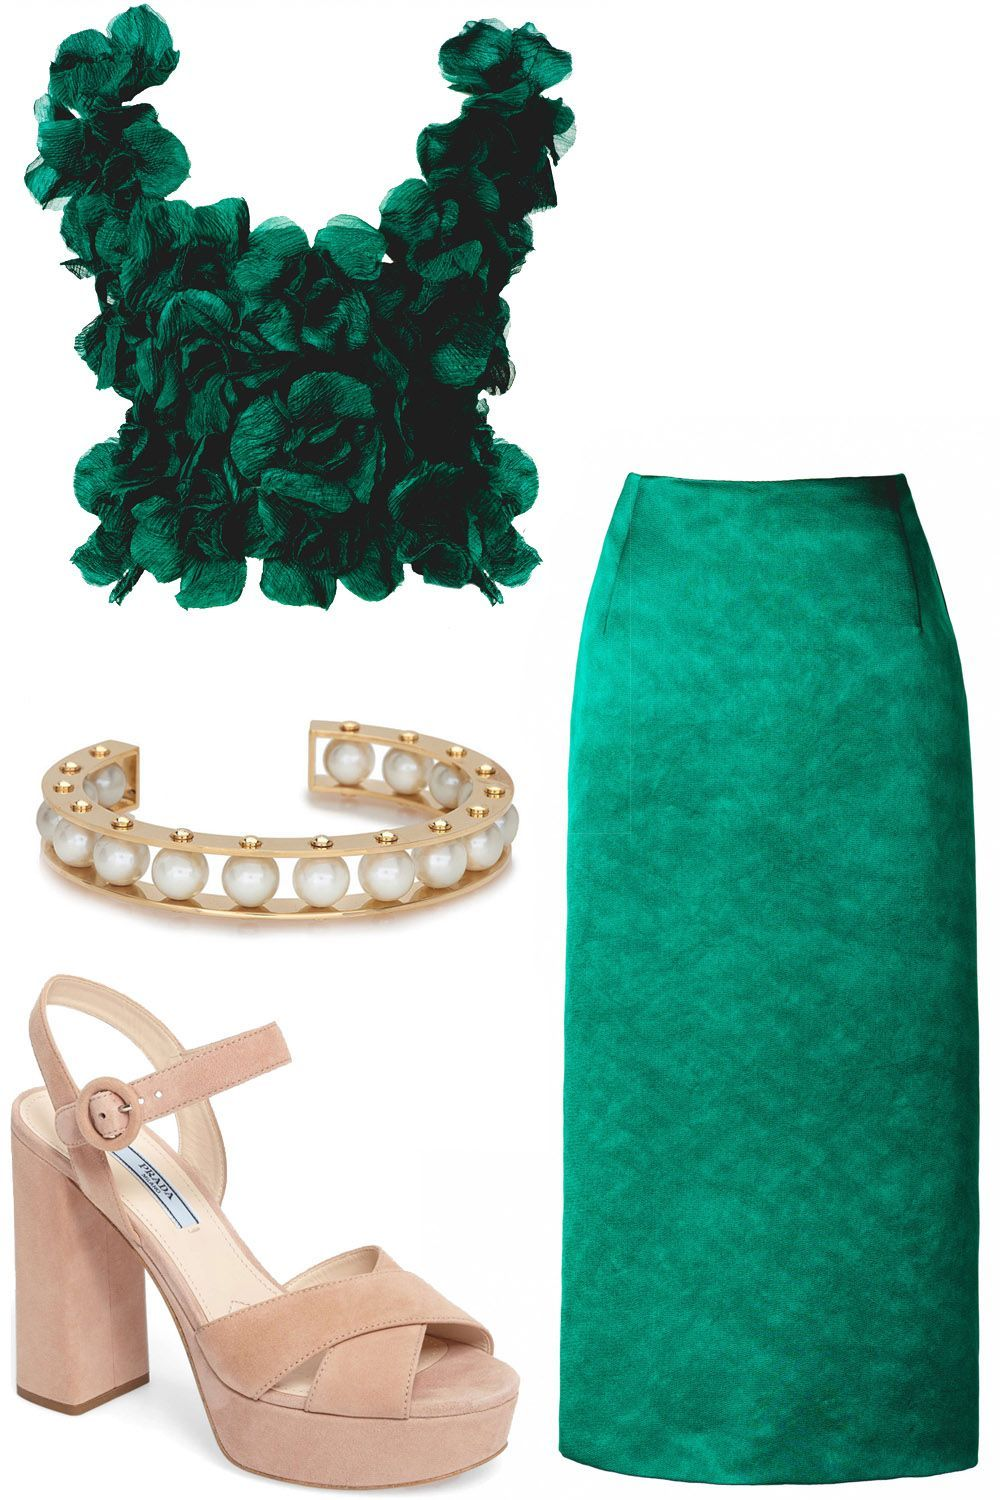 Best dressed guest the winter weddings edit green goddess